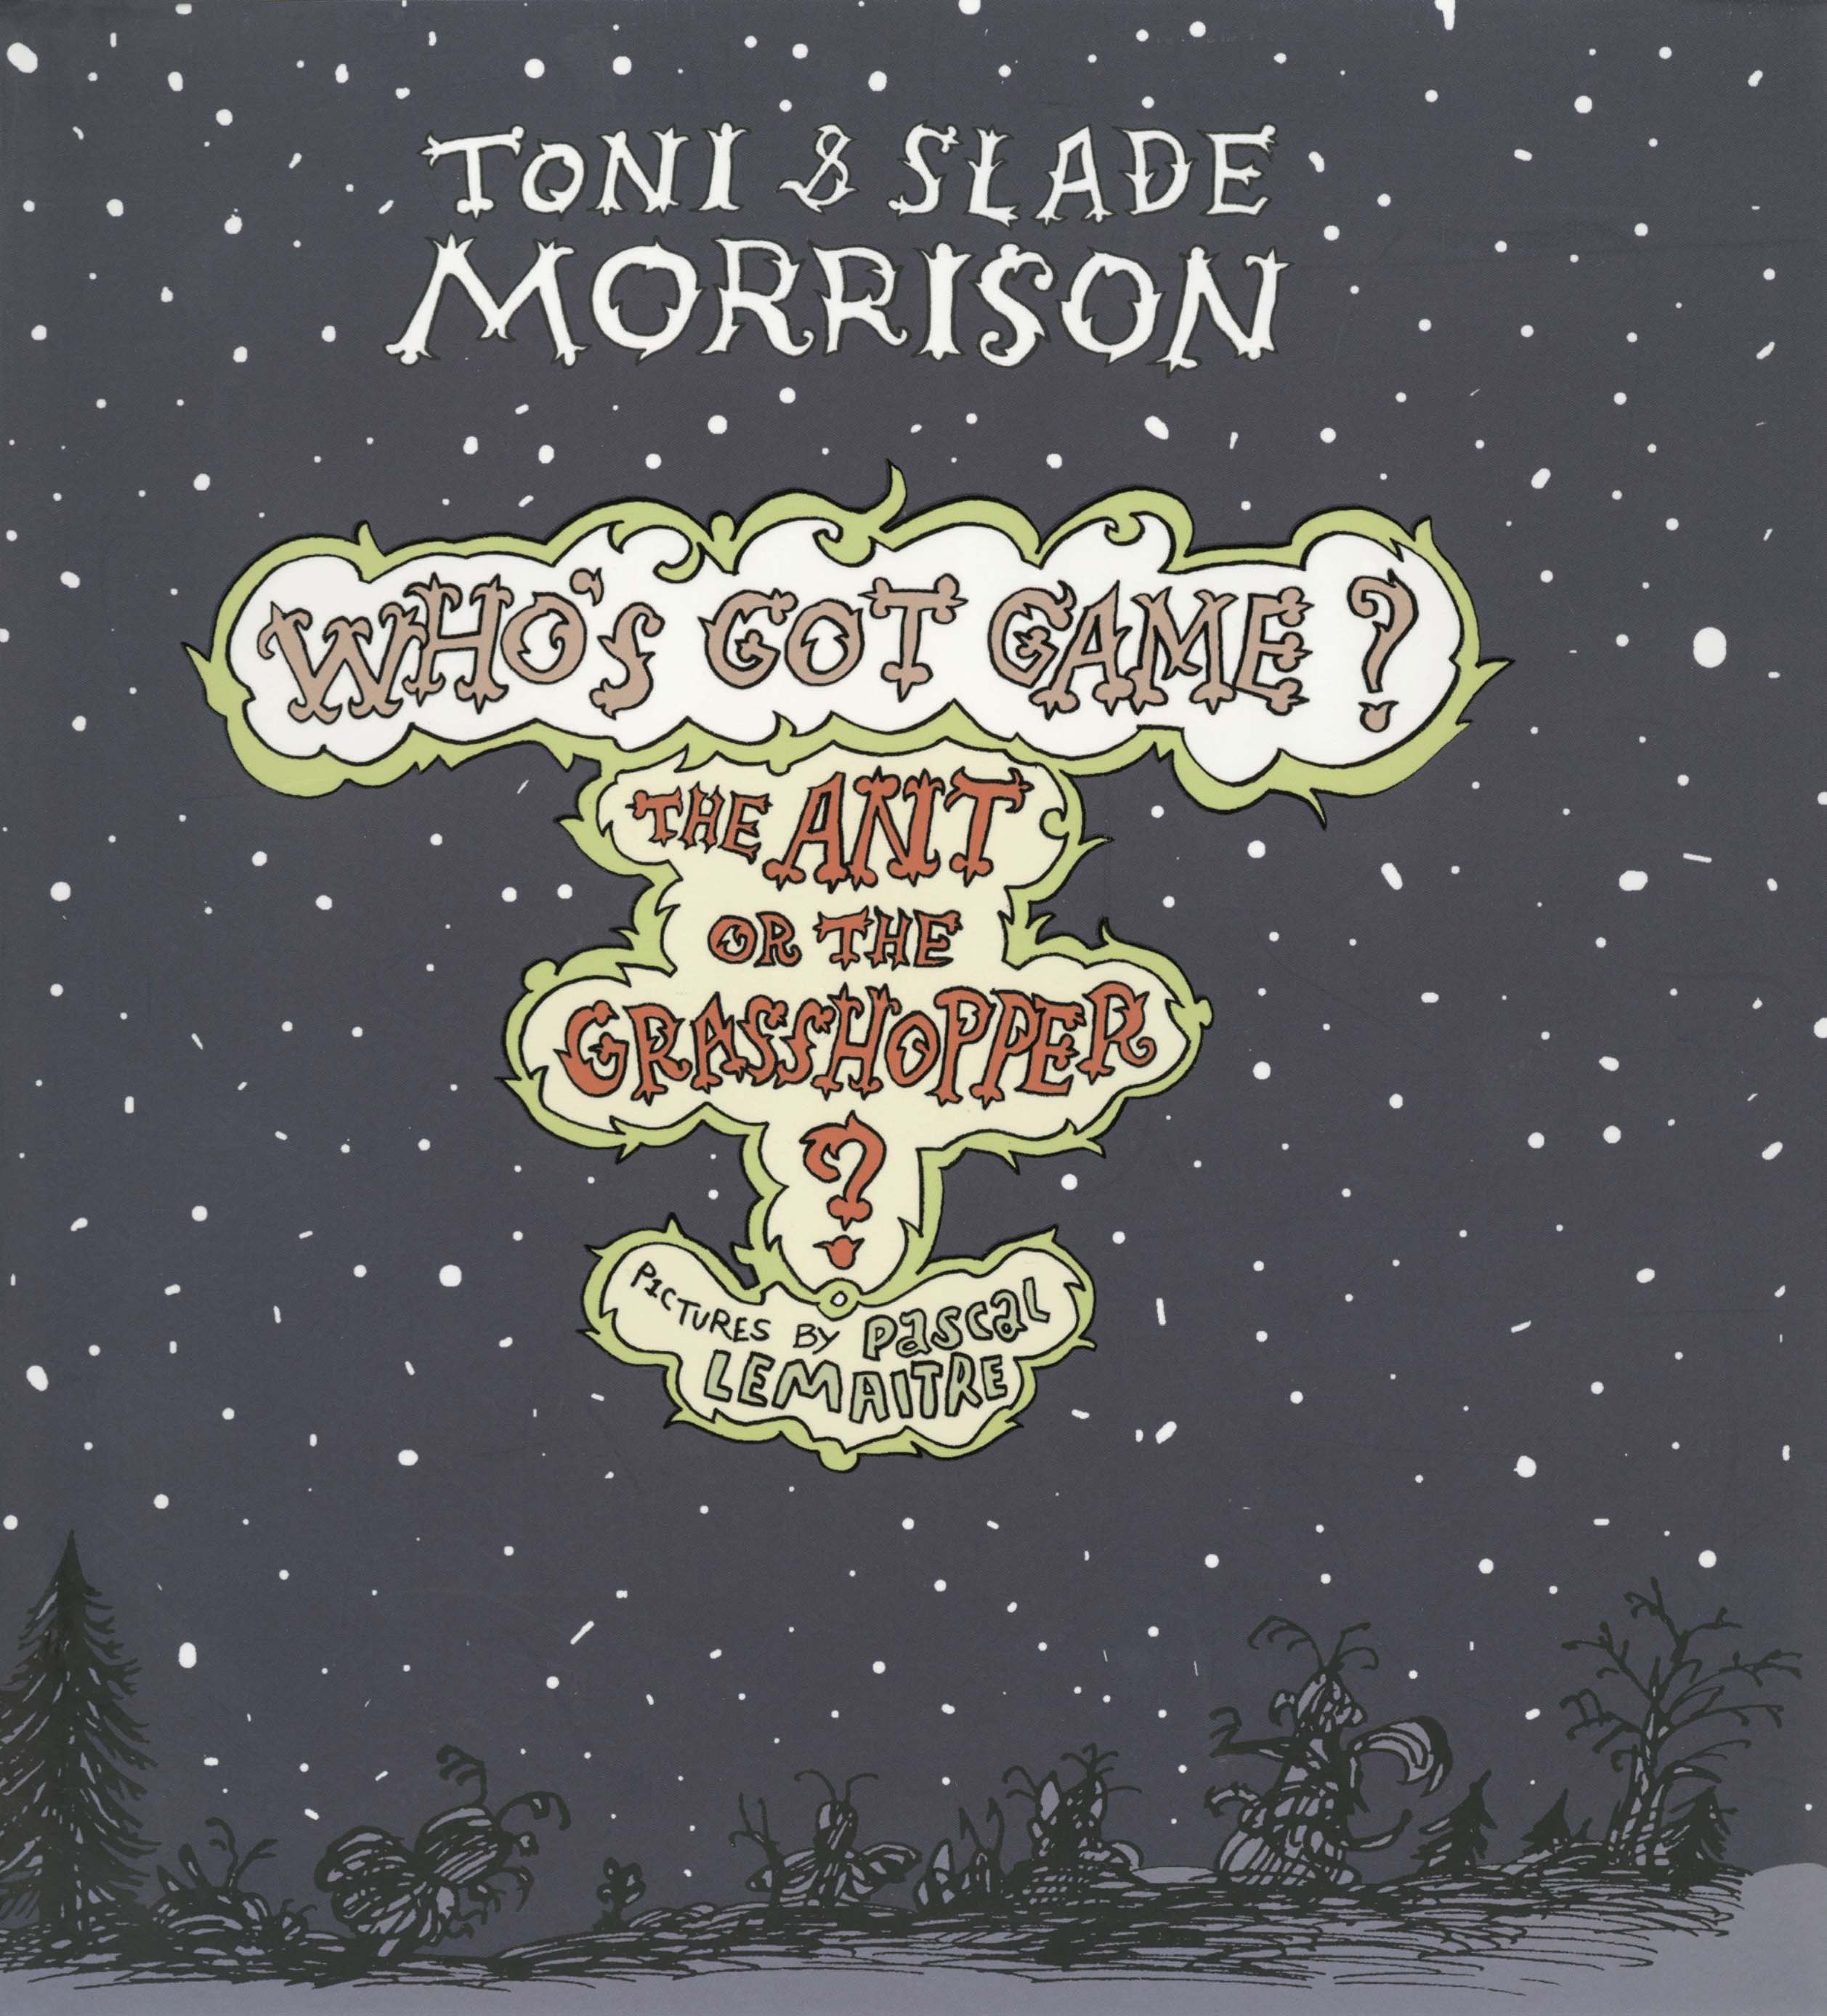 The ant or the grasshopper book by toni morrison slade morrison 9781476792699 hr fandeluxe Images